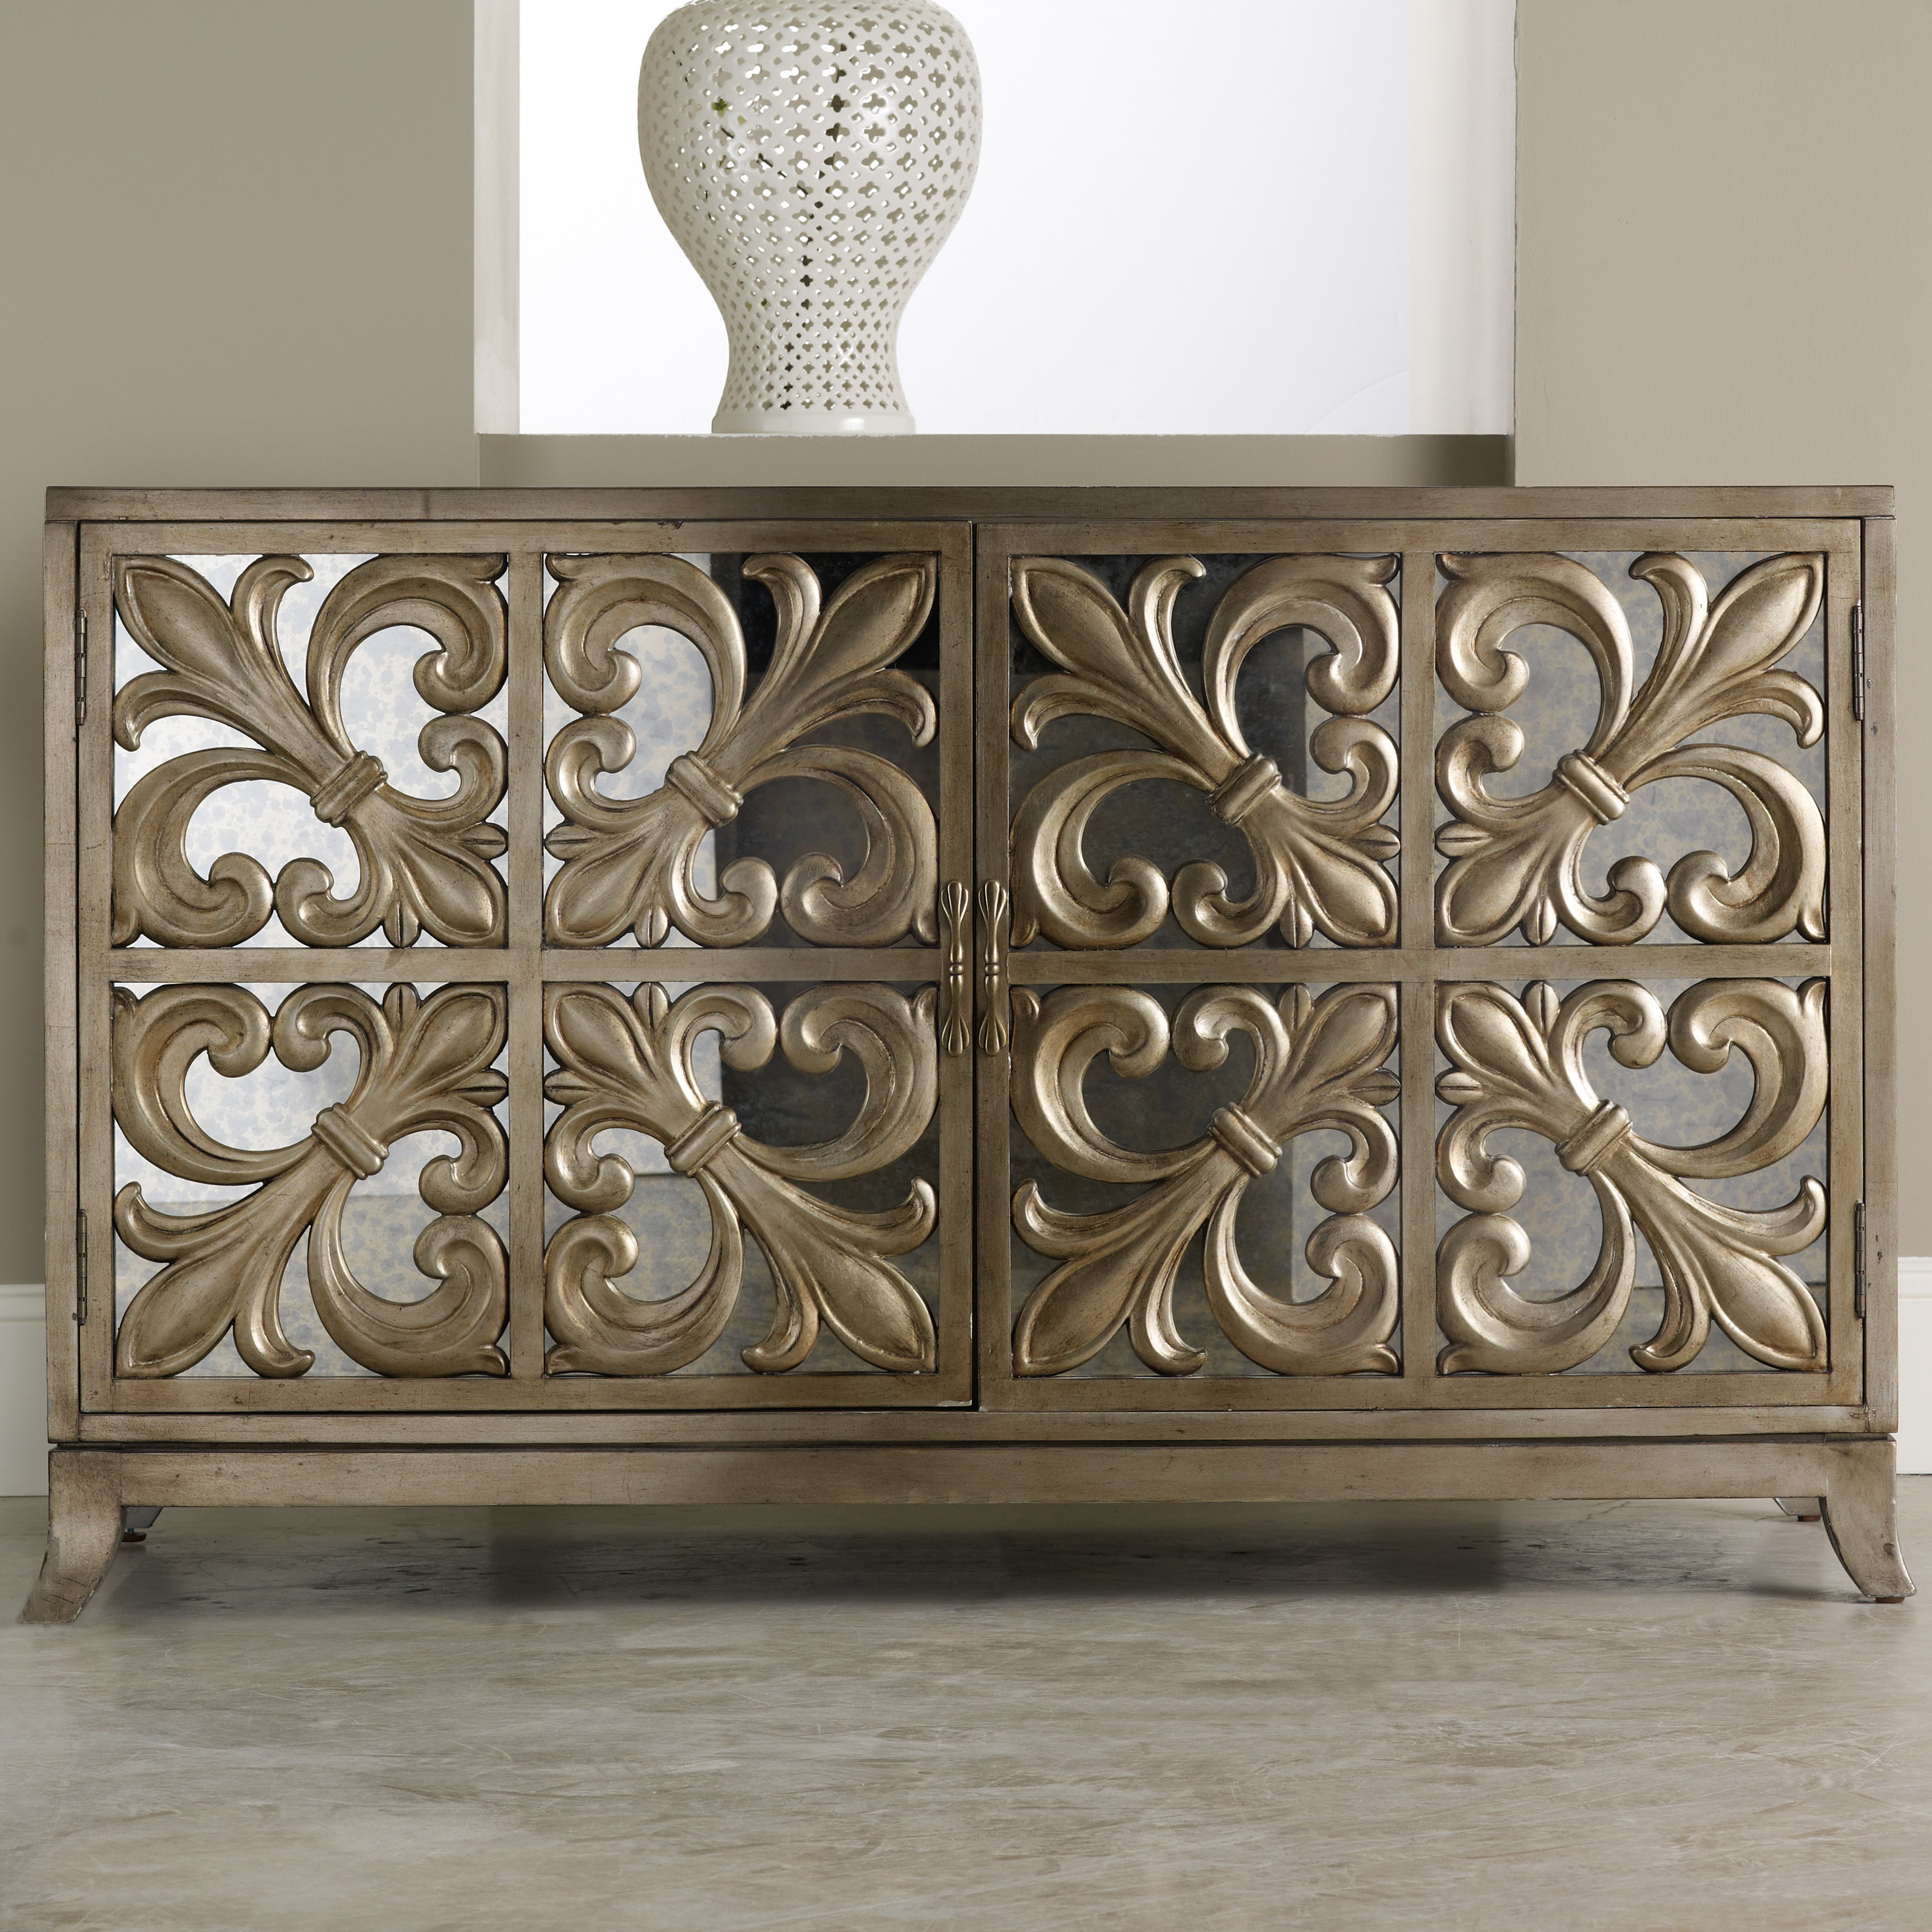 Hooker Furniture Melange Fleur De Lis Mirrored Sideboard & Reviews Throughout Famous 2 Door Mirror Front Sideboards (View 8 of 20)